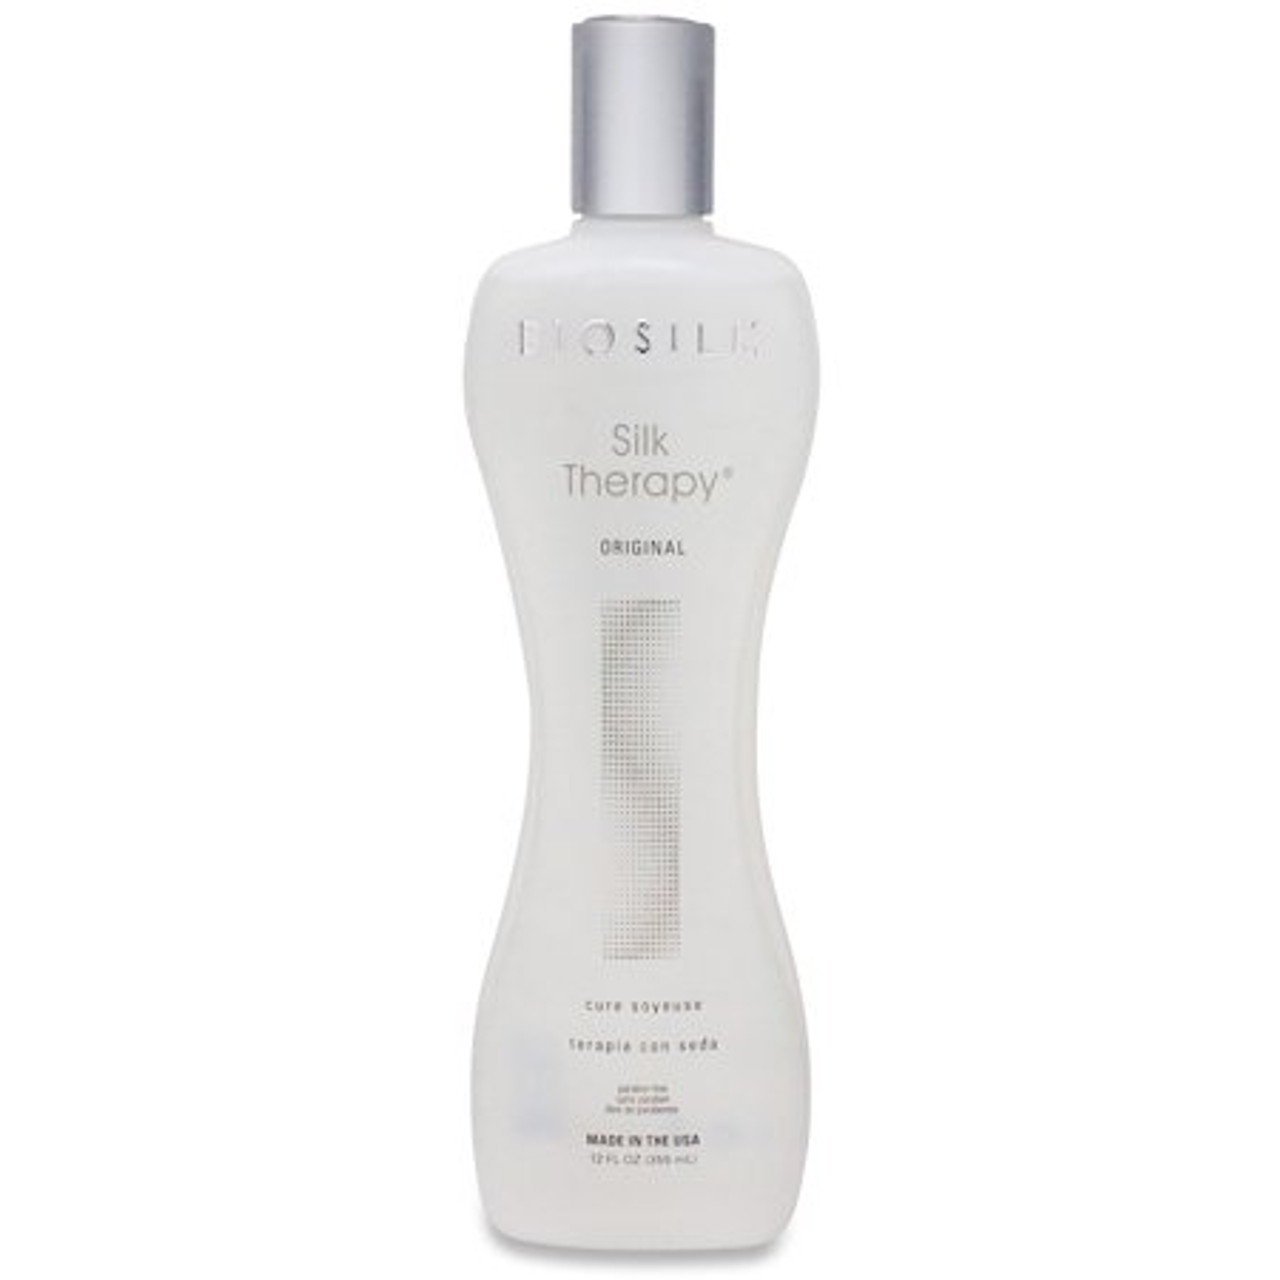 Biosilk Silk Therapy 12 Oz